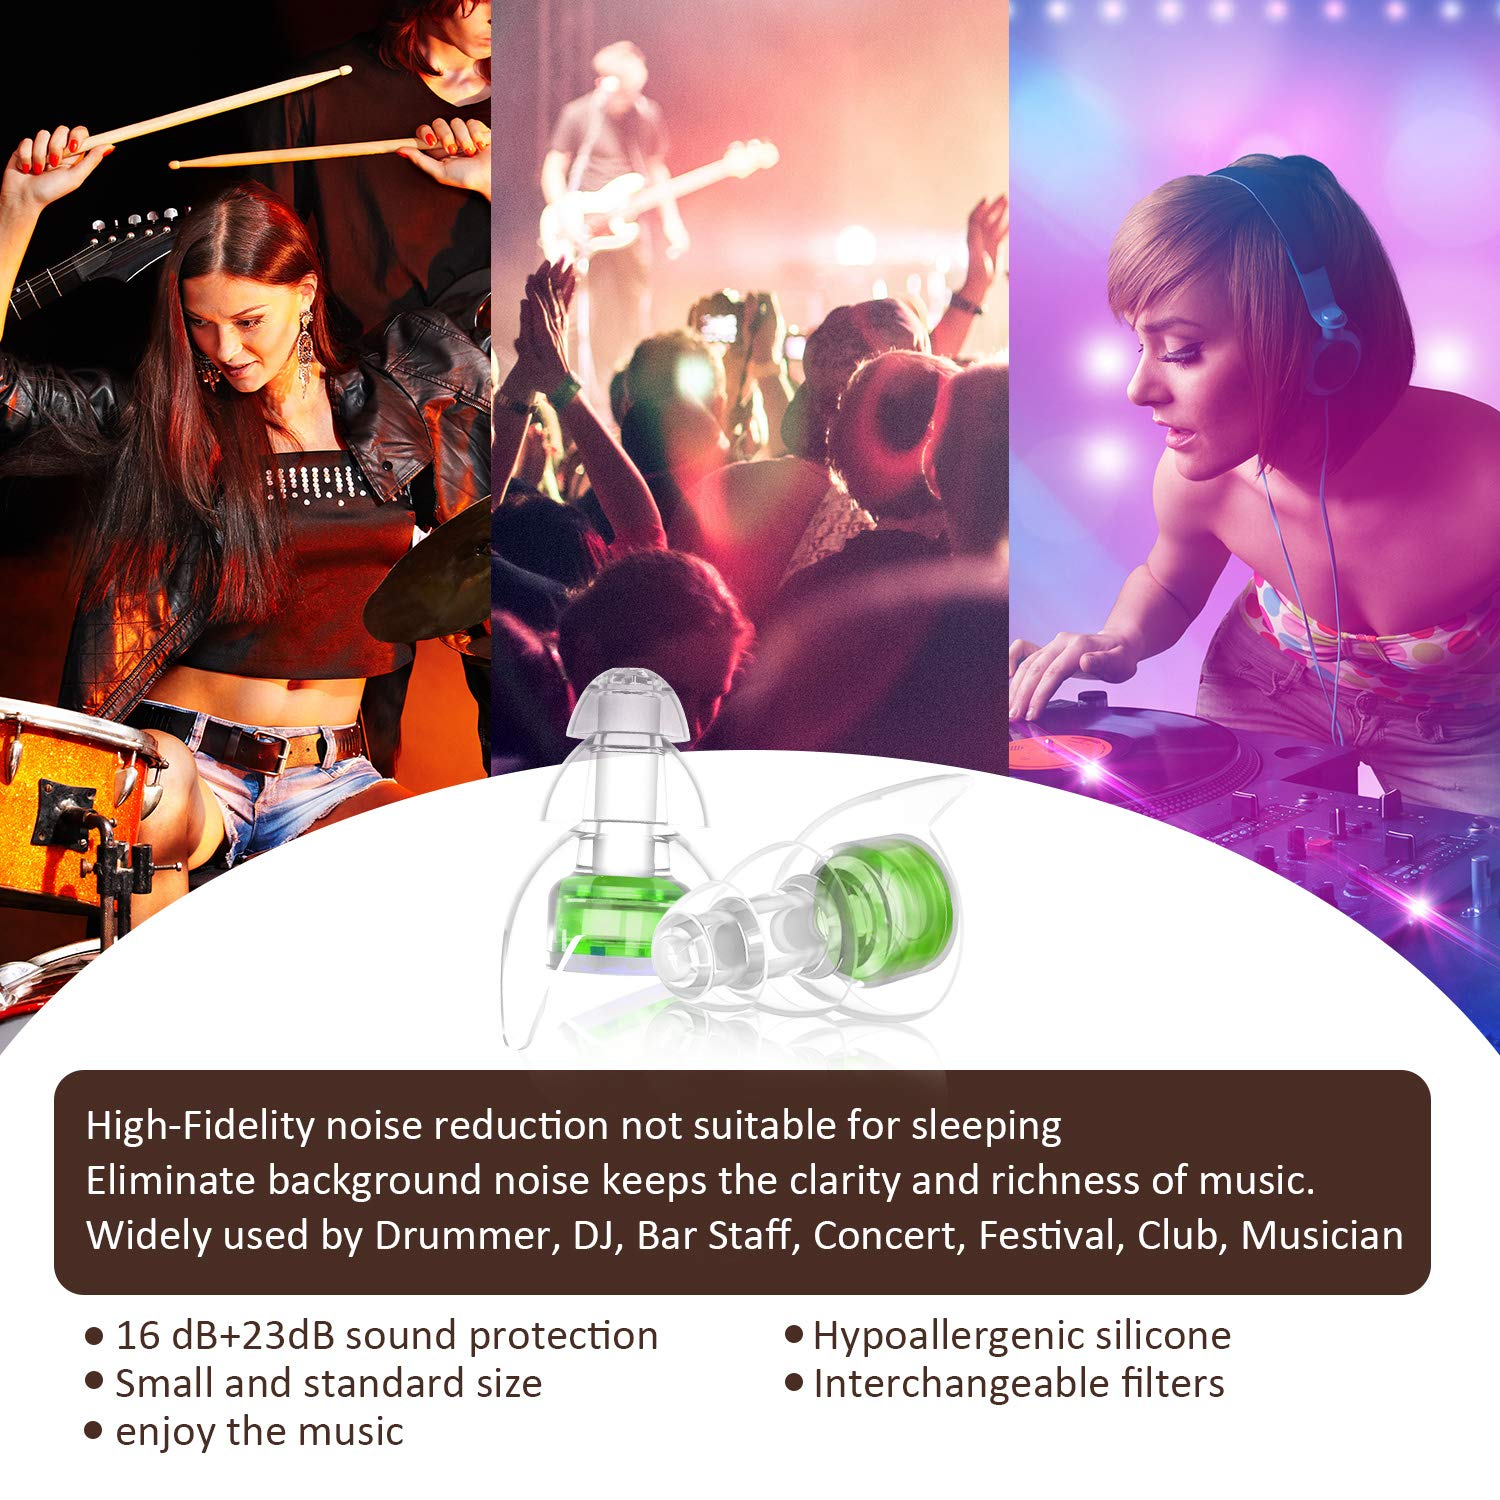 Ear Plugs for Concerts,High Fidelity Ear Plugs by Softvox Reusable Noise Cancelling Ear Plugs for Musicians, Drummers, Motorcycle, Travel with Swimming Ear Plugs(2 Pair of Filters) by softvox (Image #5)